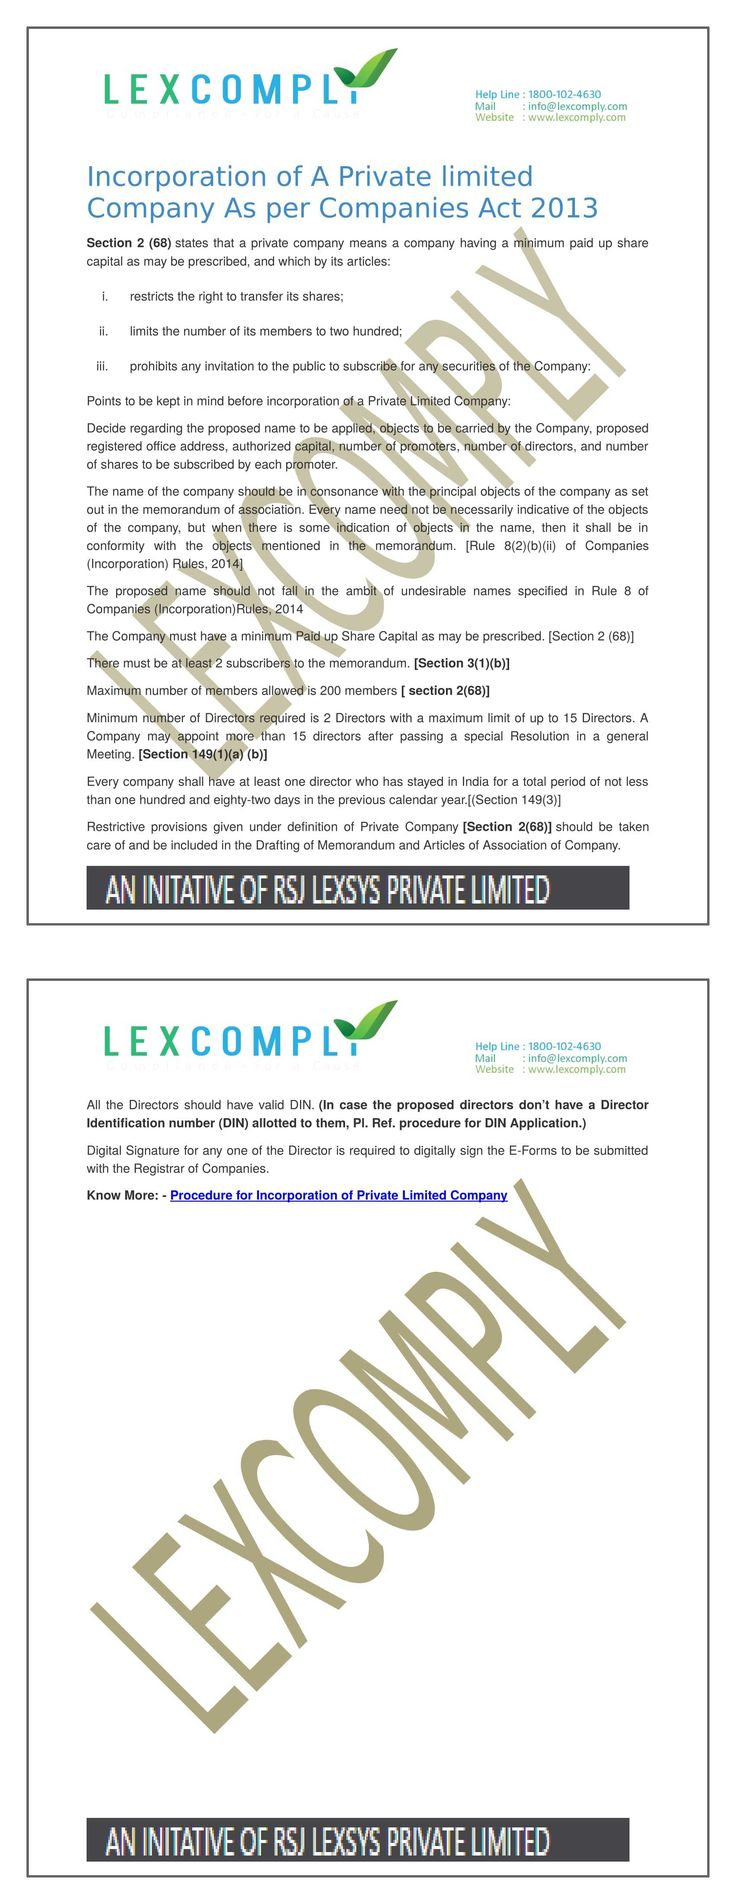 Incorporation of A Private limited Company As per Companies Act 2013 - https://lexcomply.com/Procedure-under-Companies-Act-2013.php?page=Incorporation-of-A-Private-Limited-Company&key=MzE=